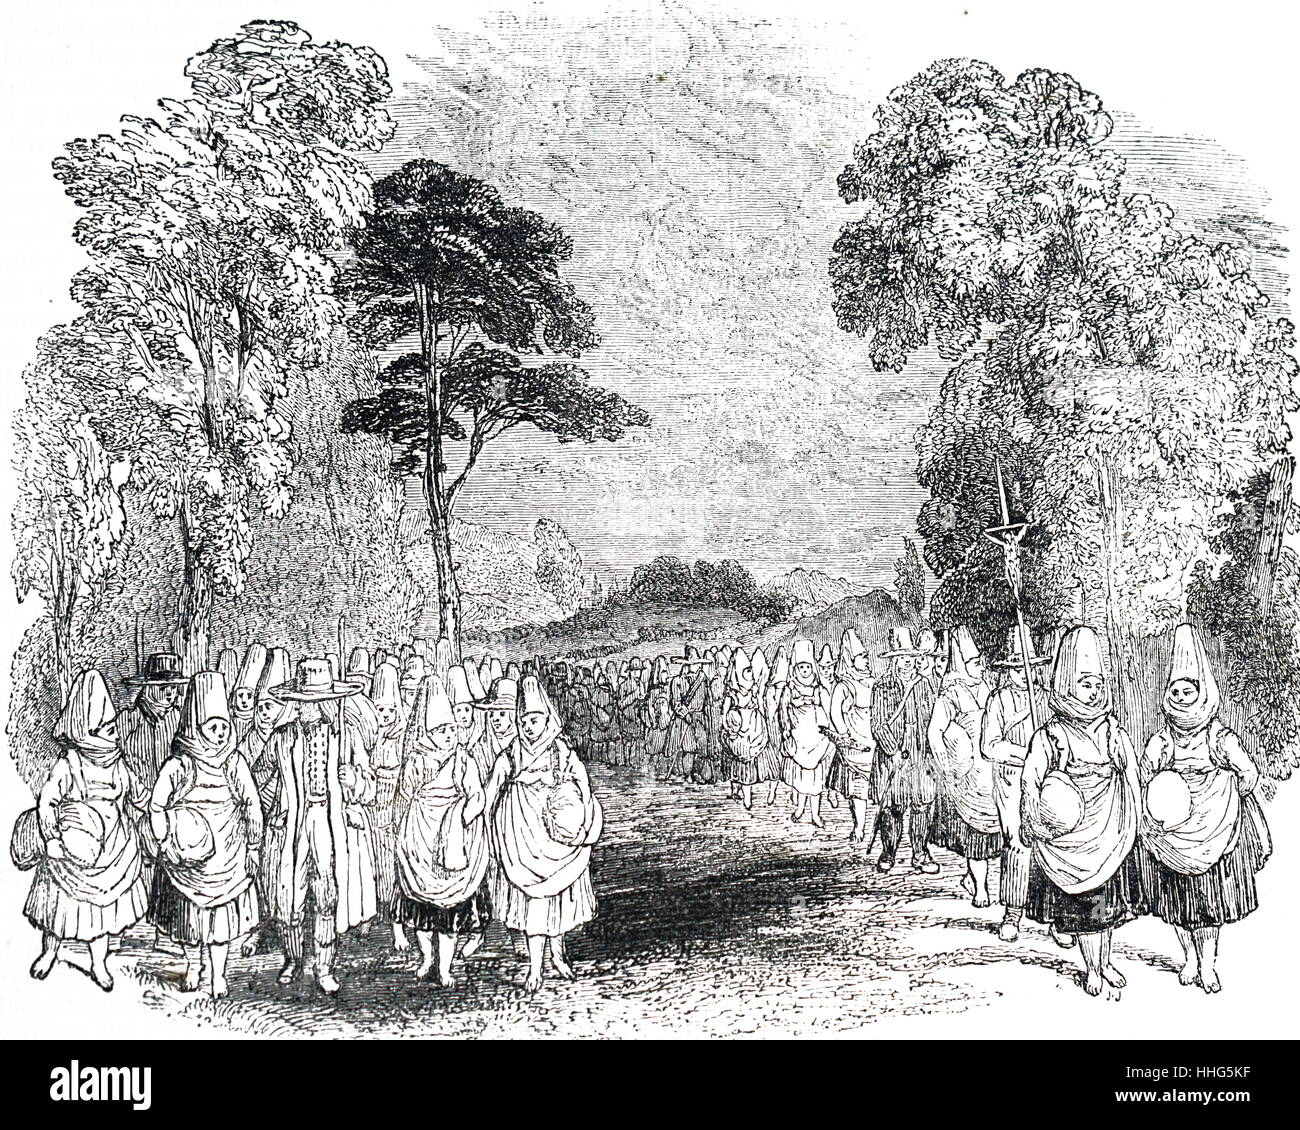 Illustration showing pilgrimage to Mariazell, Austria. 1836. - Stock Image